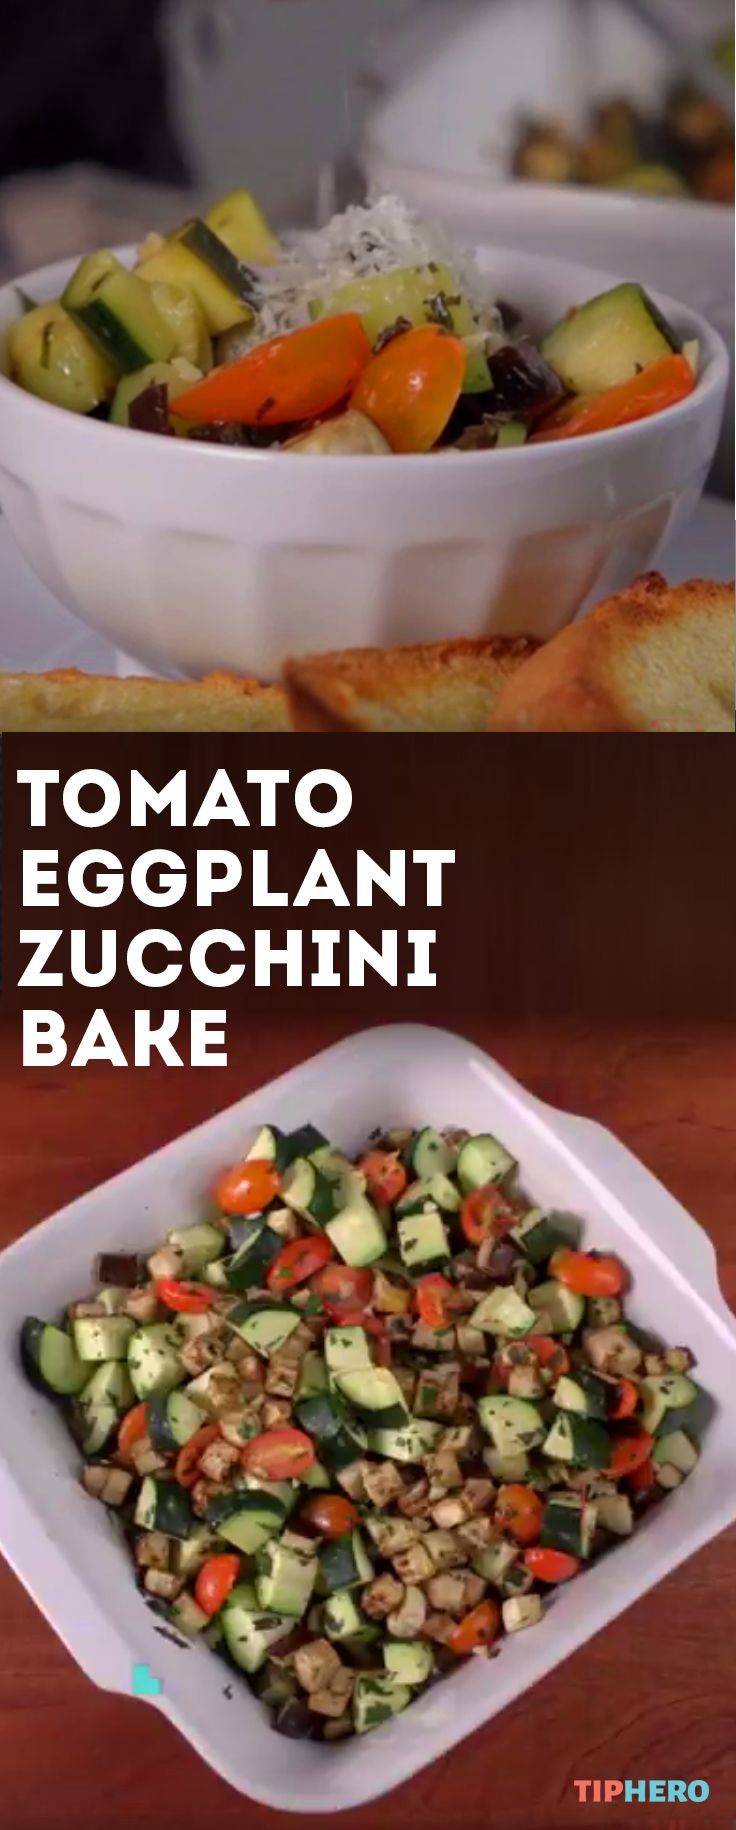 Tomato Eggplant Zucchini Bake Recipe | An easy to prep--and healthy--casserole that's great for warmer days.